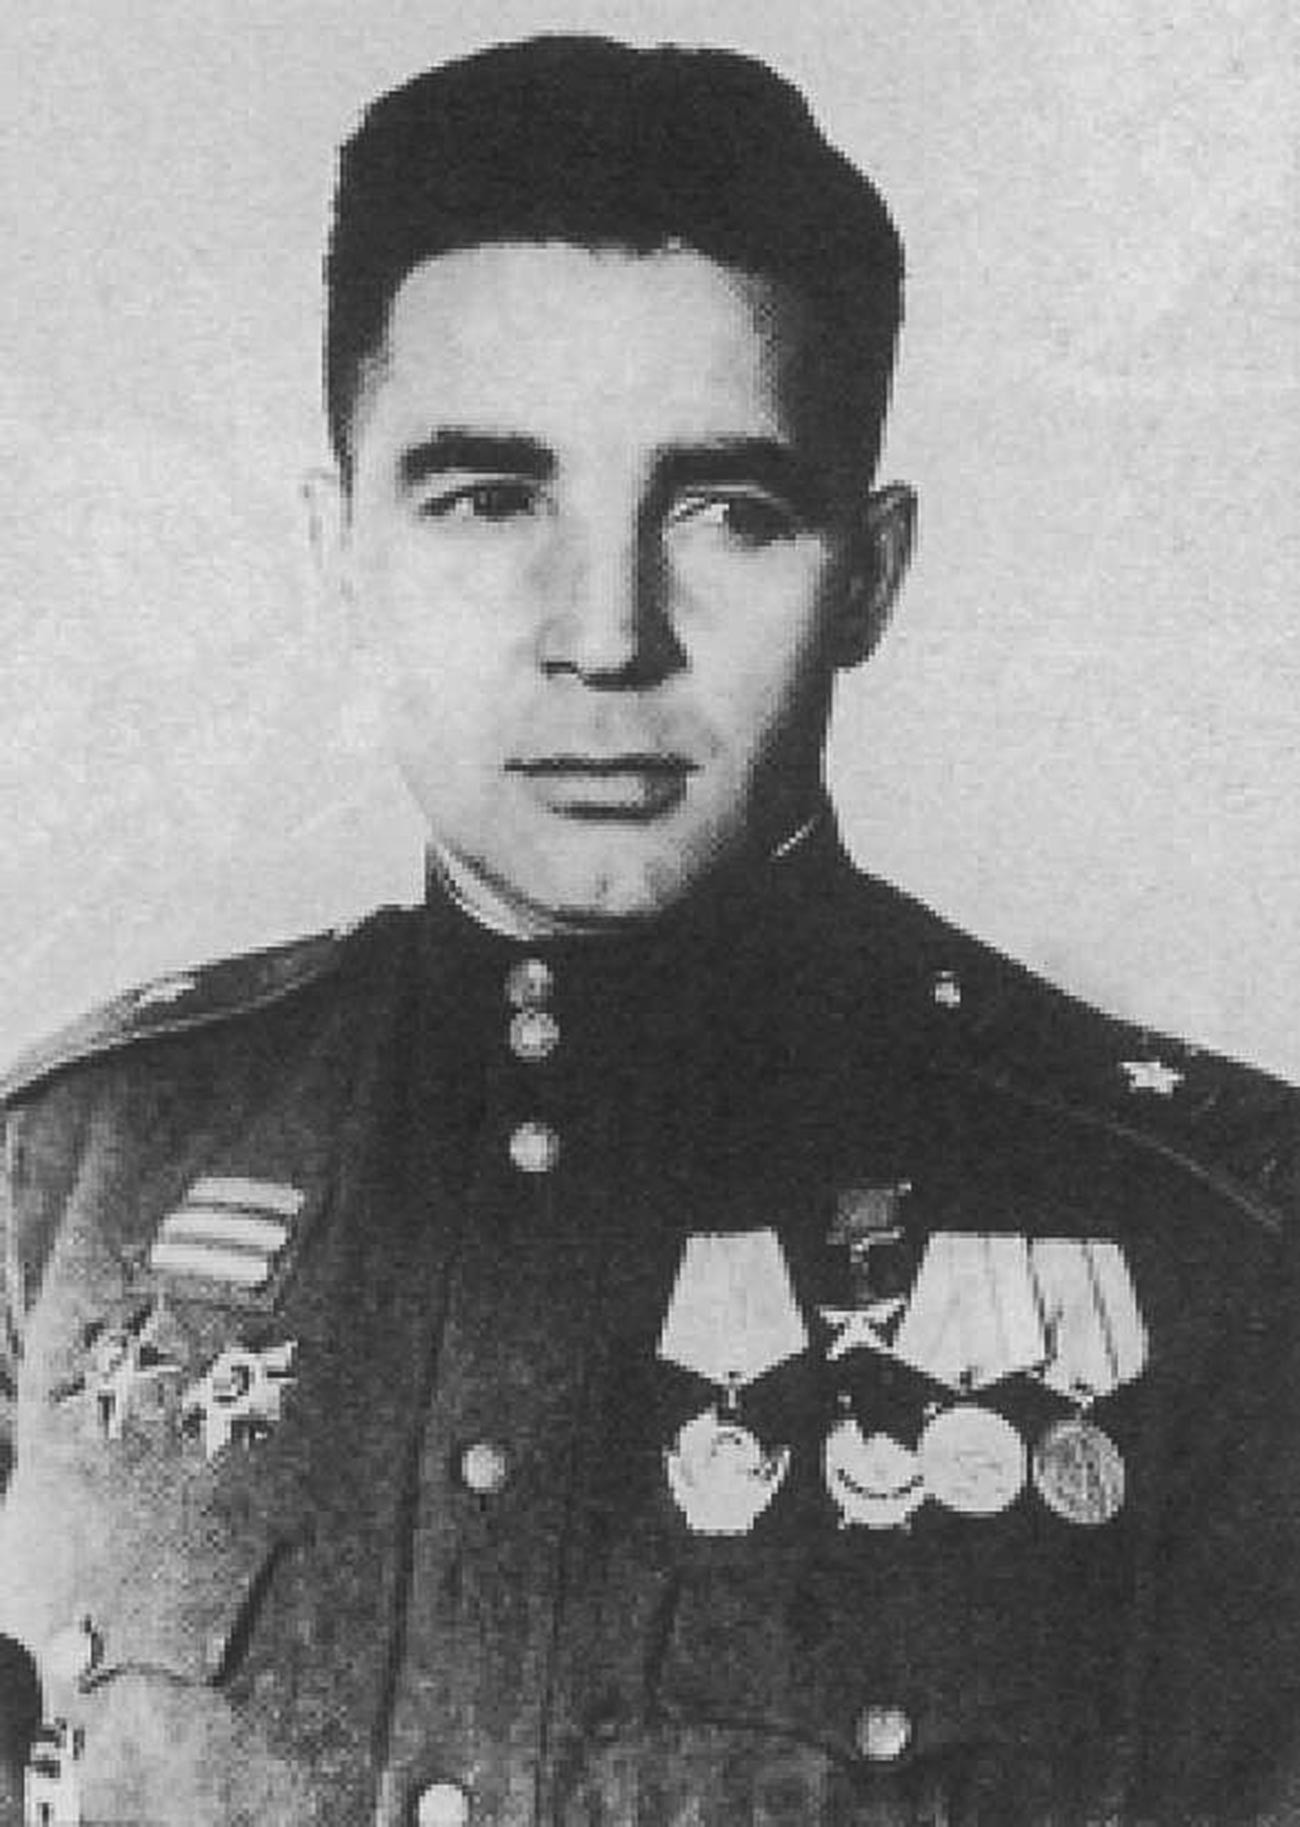 Margelov during WWII.